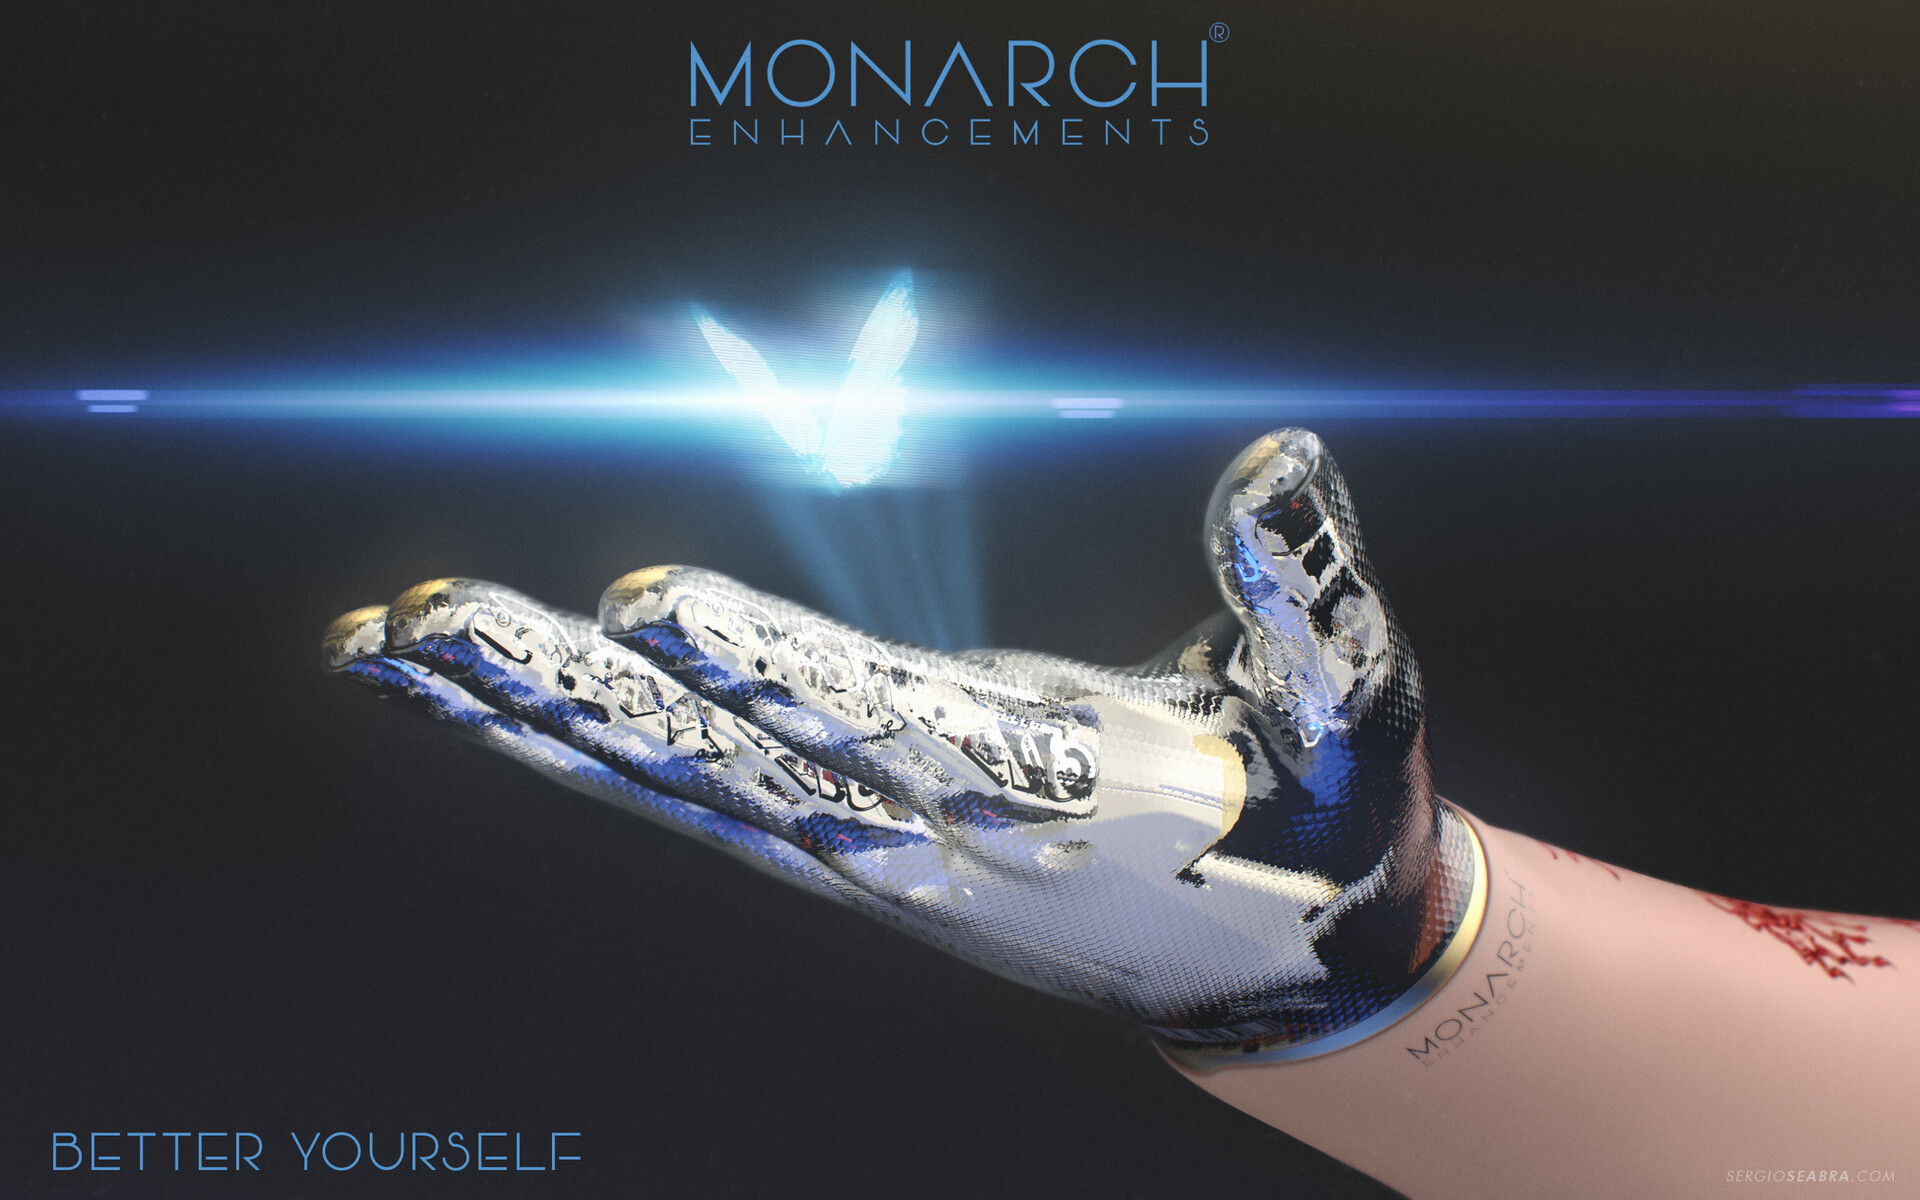 Sergio seabra 20190911 monarch prosthetic arm6